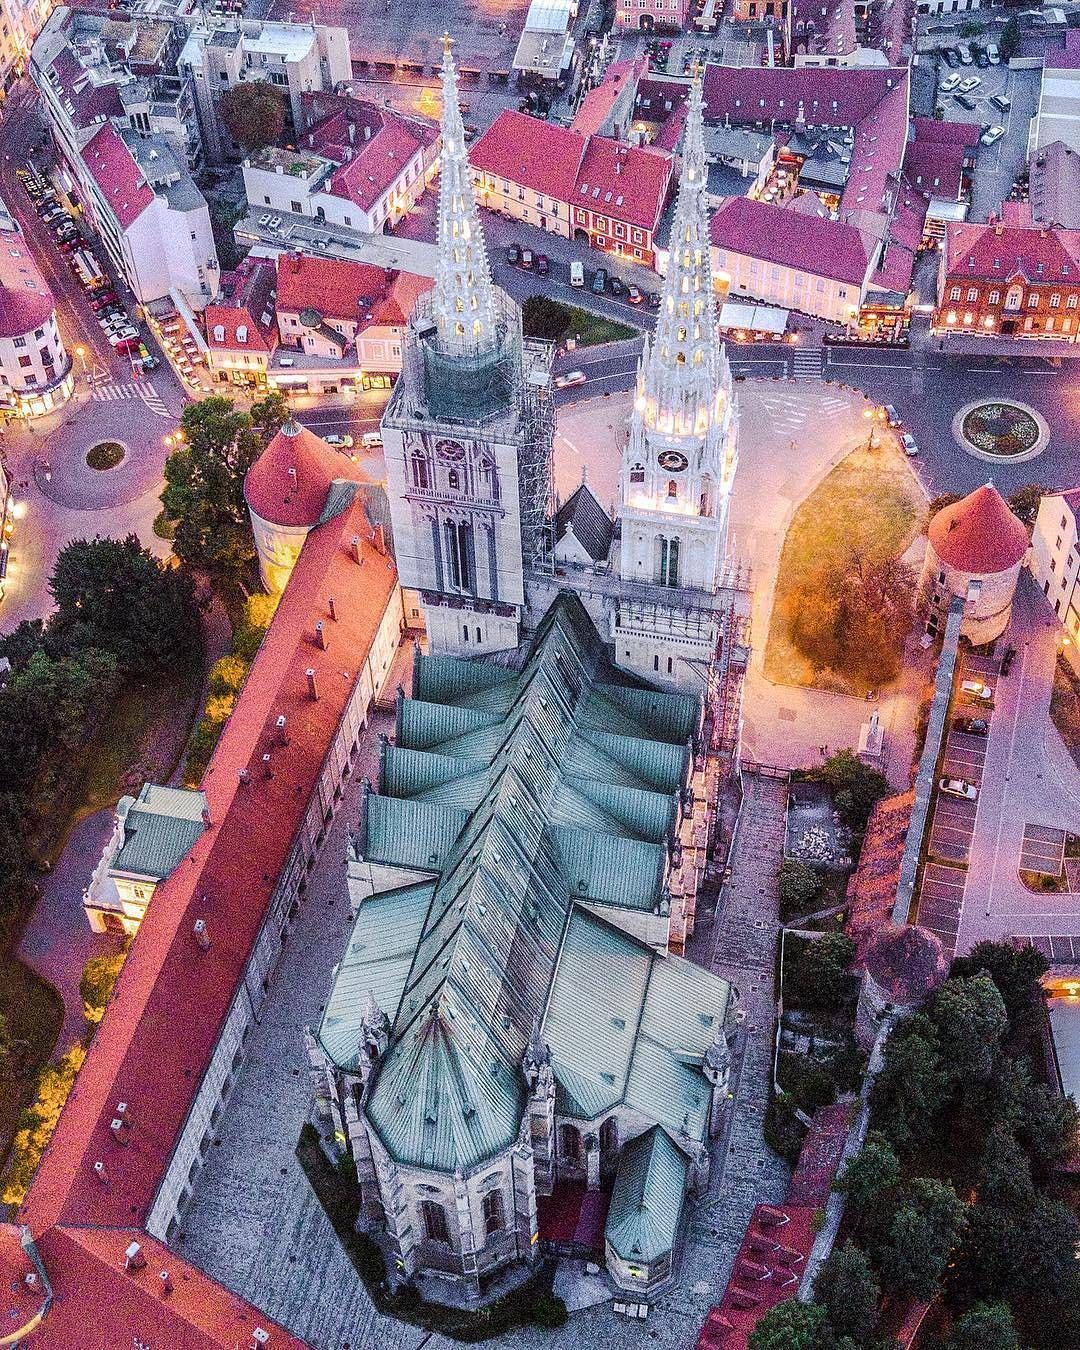 13 1k Likes 83 Comments Croatia Full Of Life Croatiafulloflife On Instagram Magical Zagreb By Crayban The Cathed Zagreb Croatia Croatia Hotels